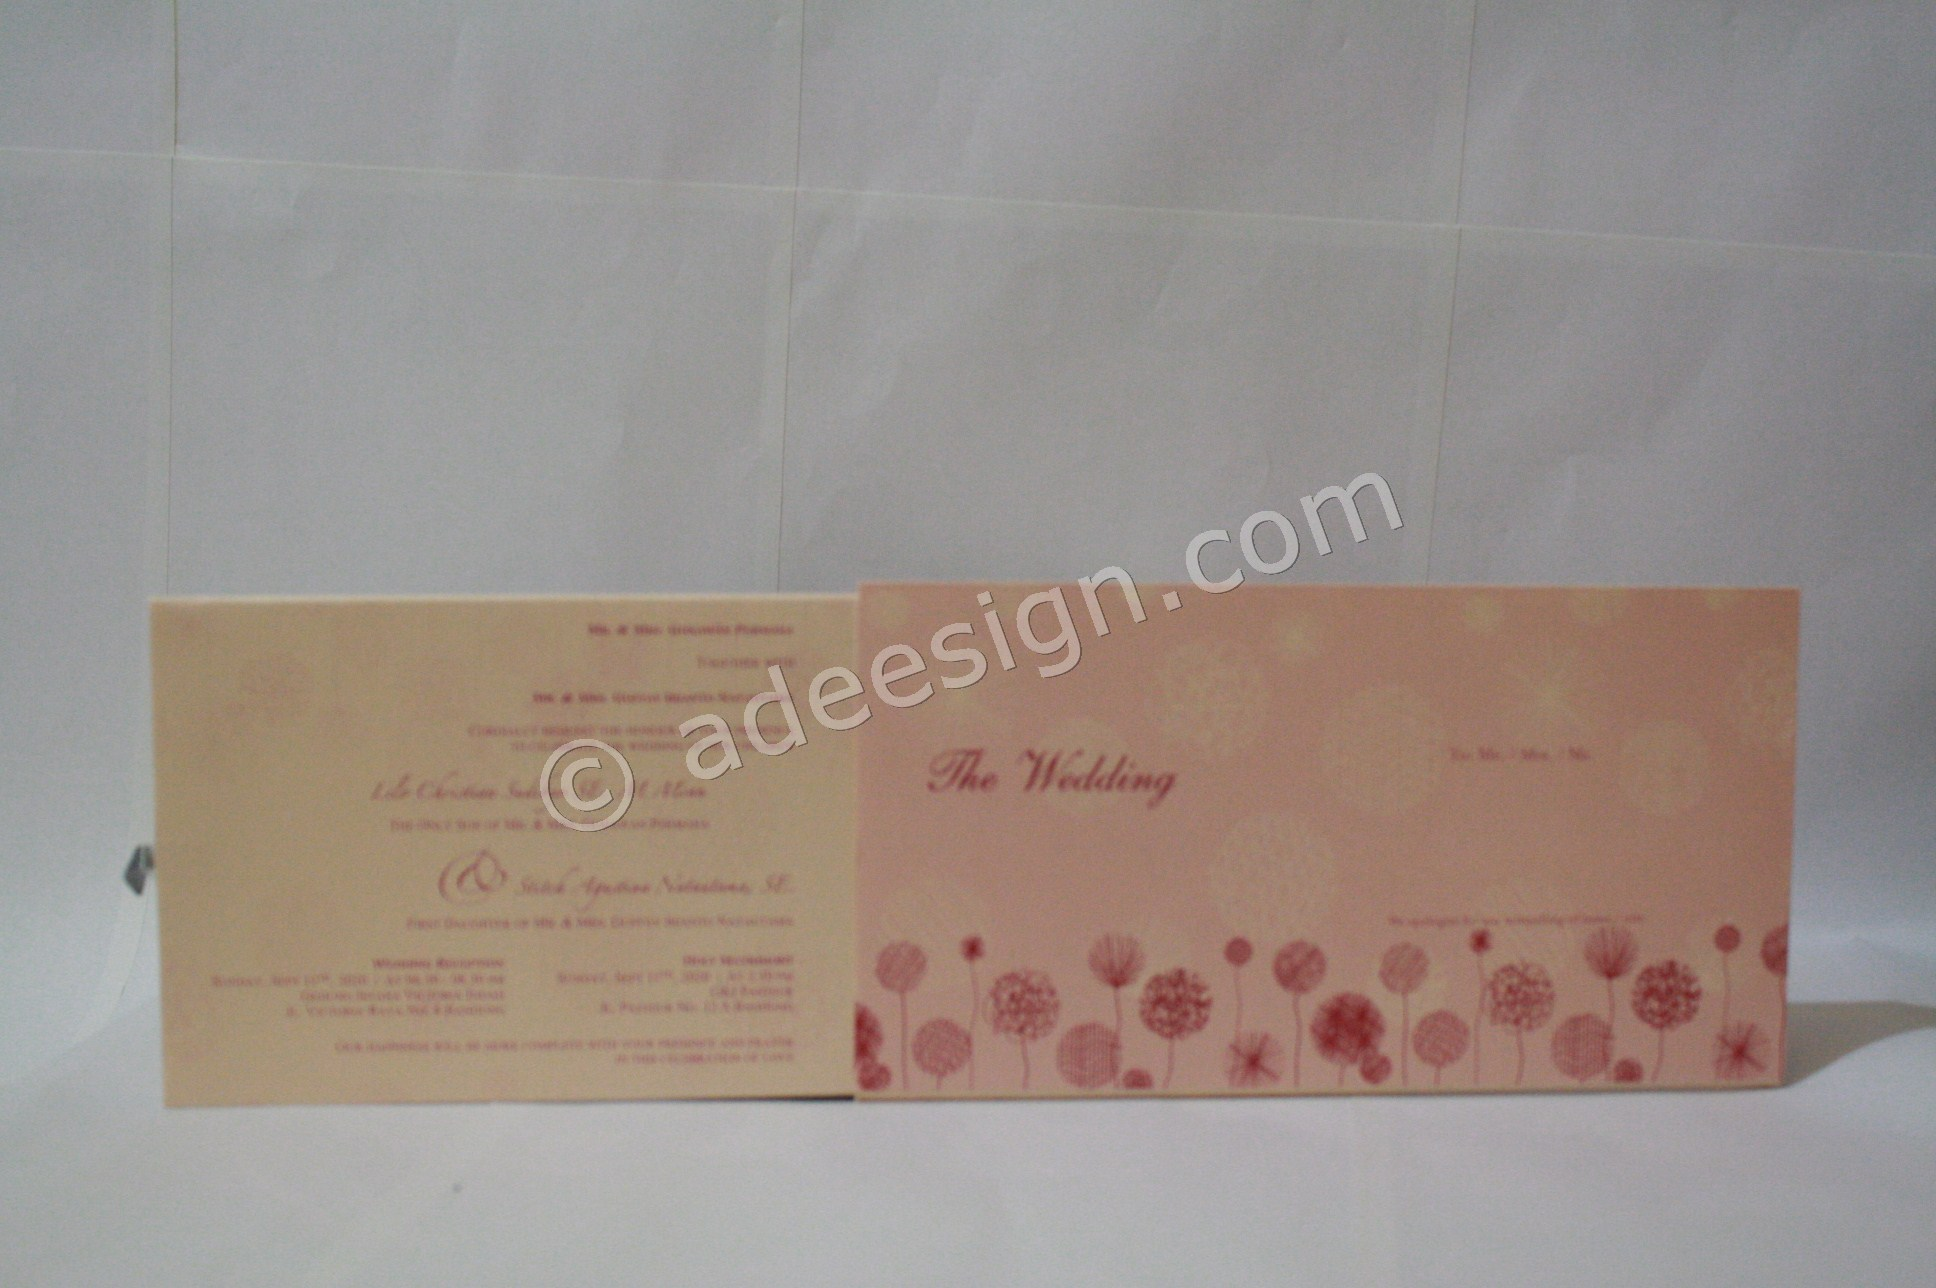 Undangan Pernikahan Hardcover ED67 3 - Membuat Wedding Invitations Simple dan Elegan di Tambak Sarioso